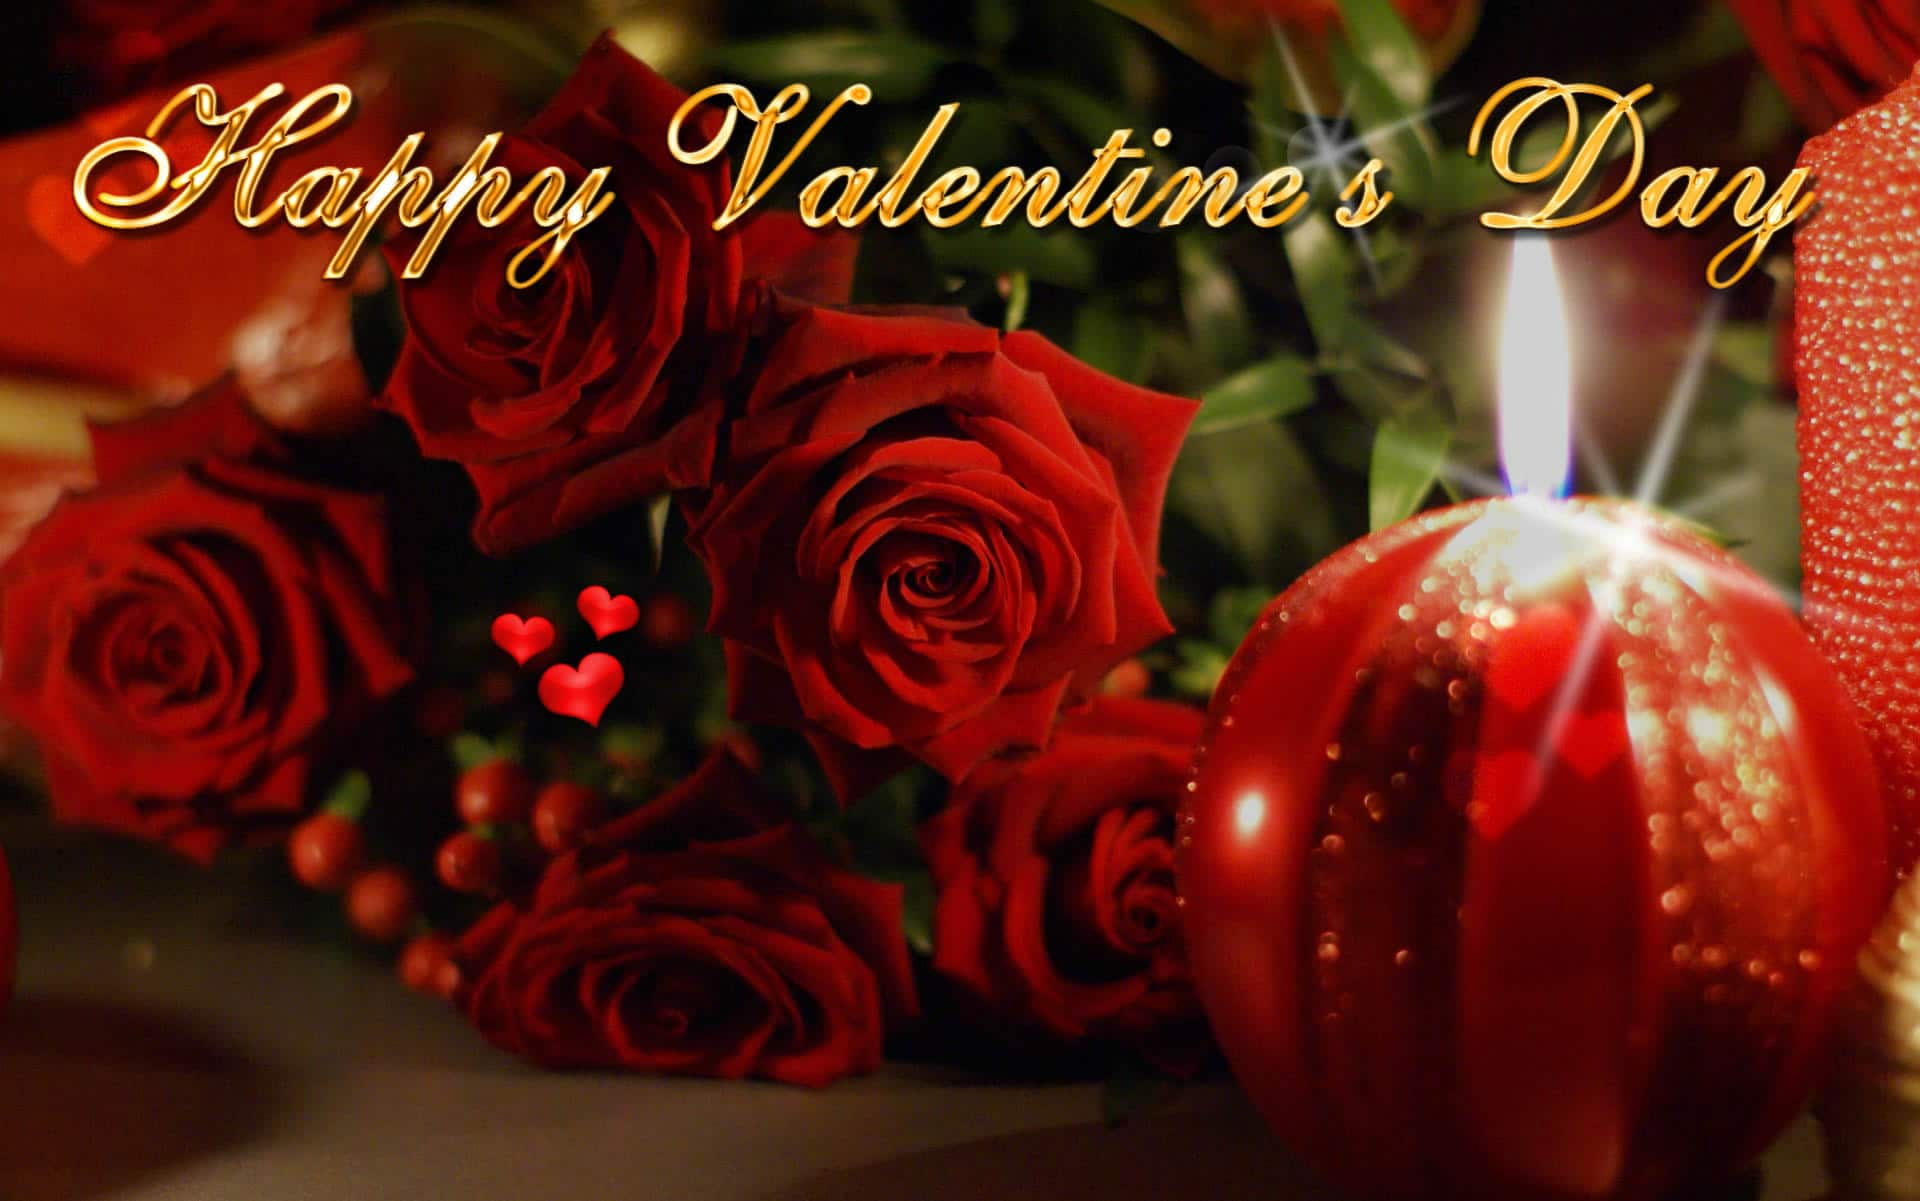 Happy Valentine's Day HD Images and Picture